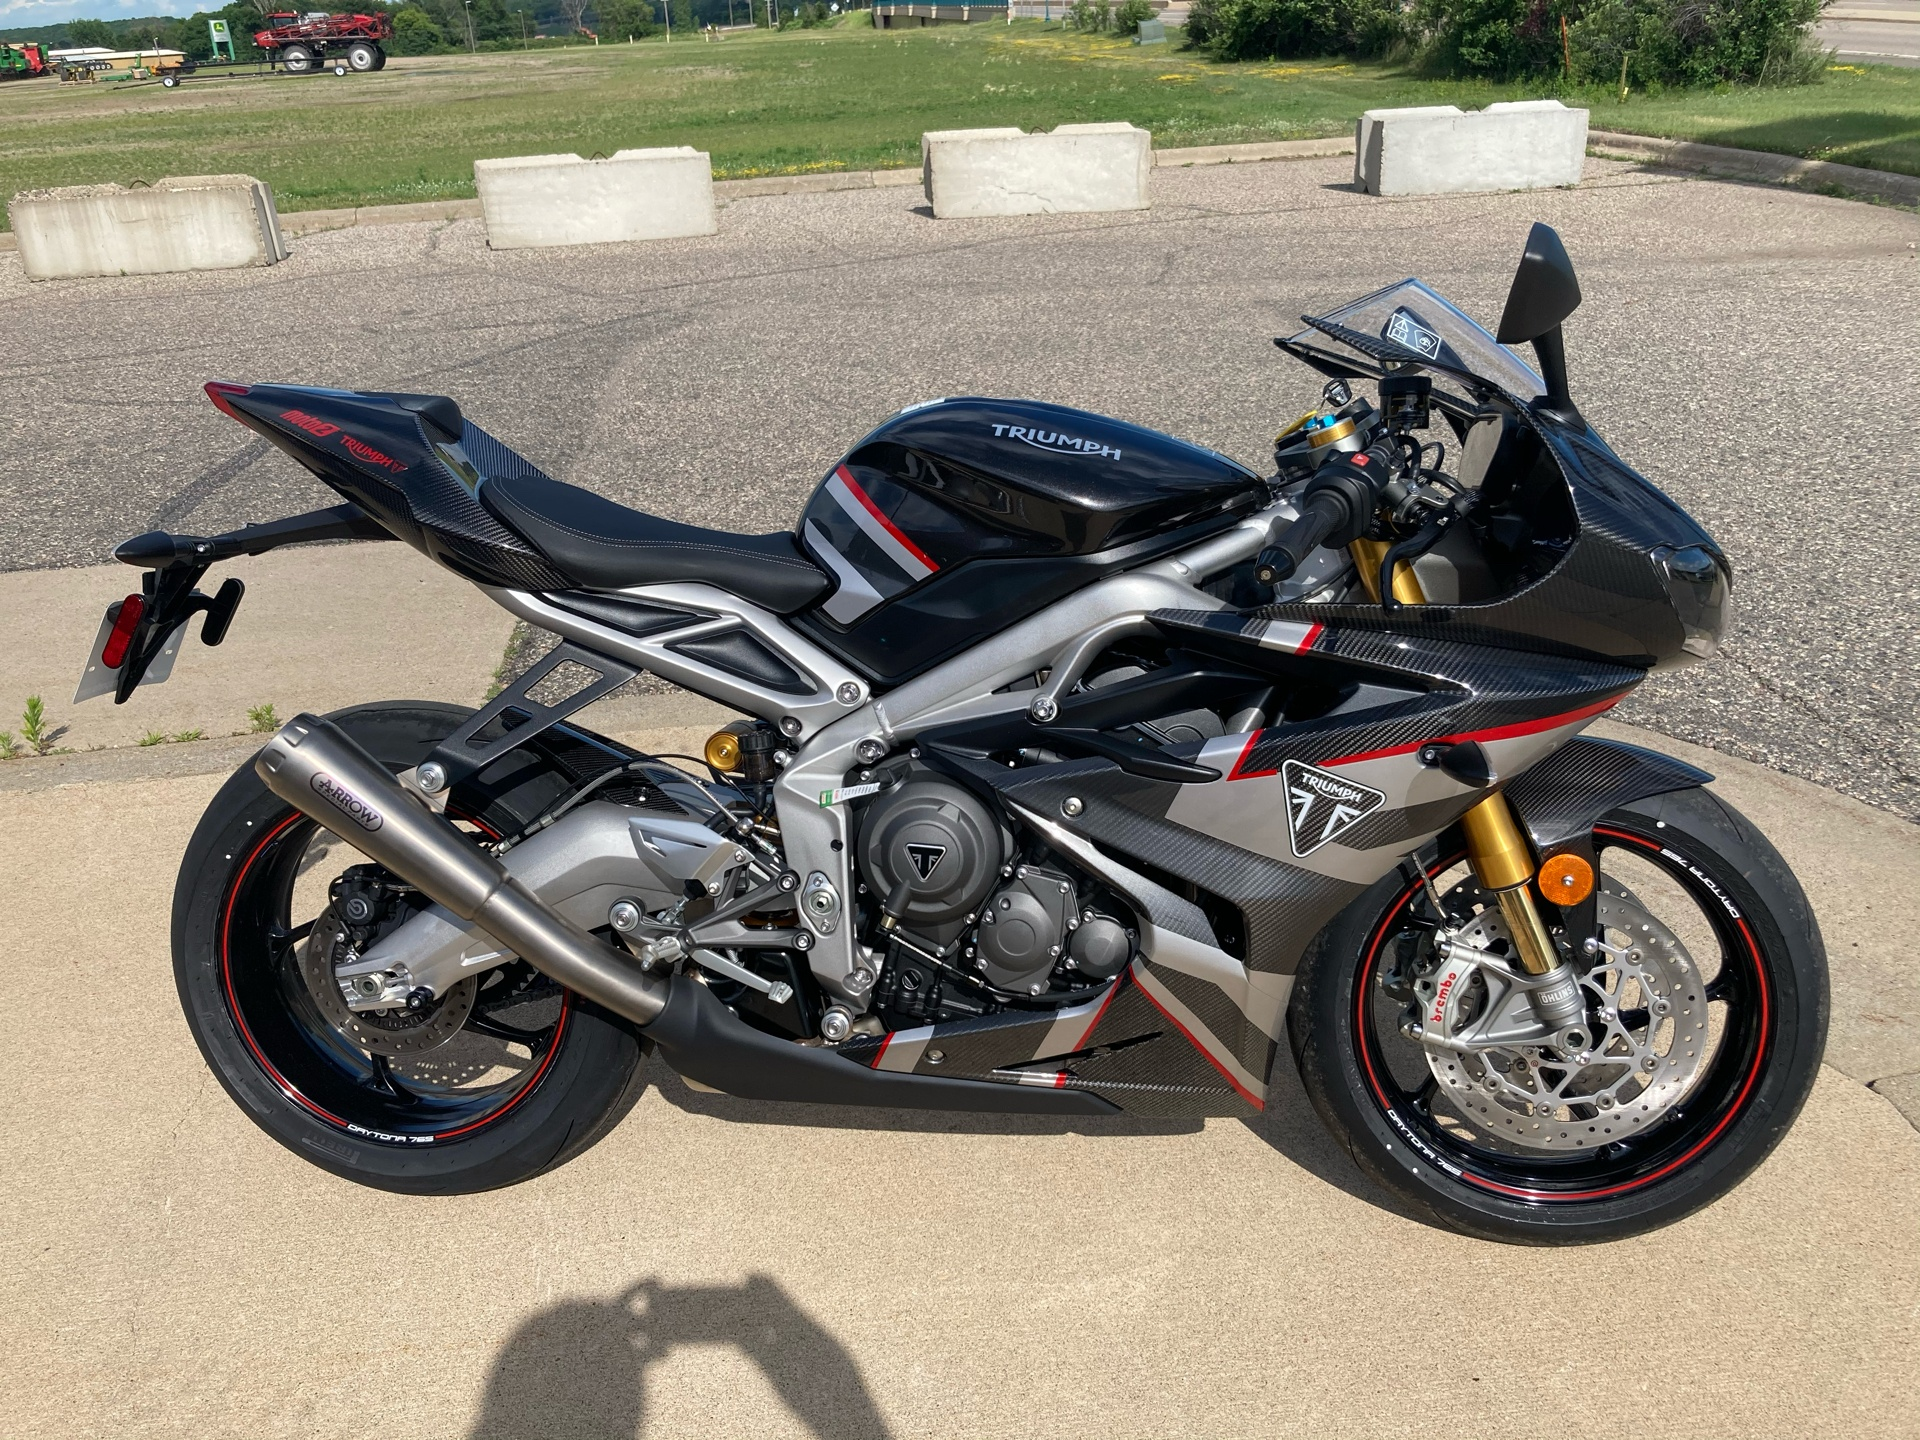 2020 Triumph Daytona Moto 2 Limited Edition in Belle Plaine, Minnesota - Photo 1